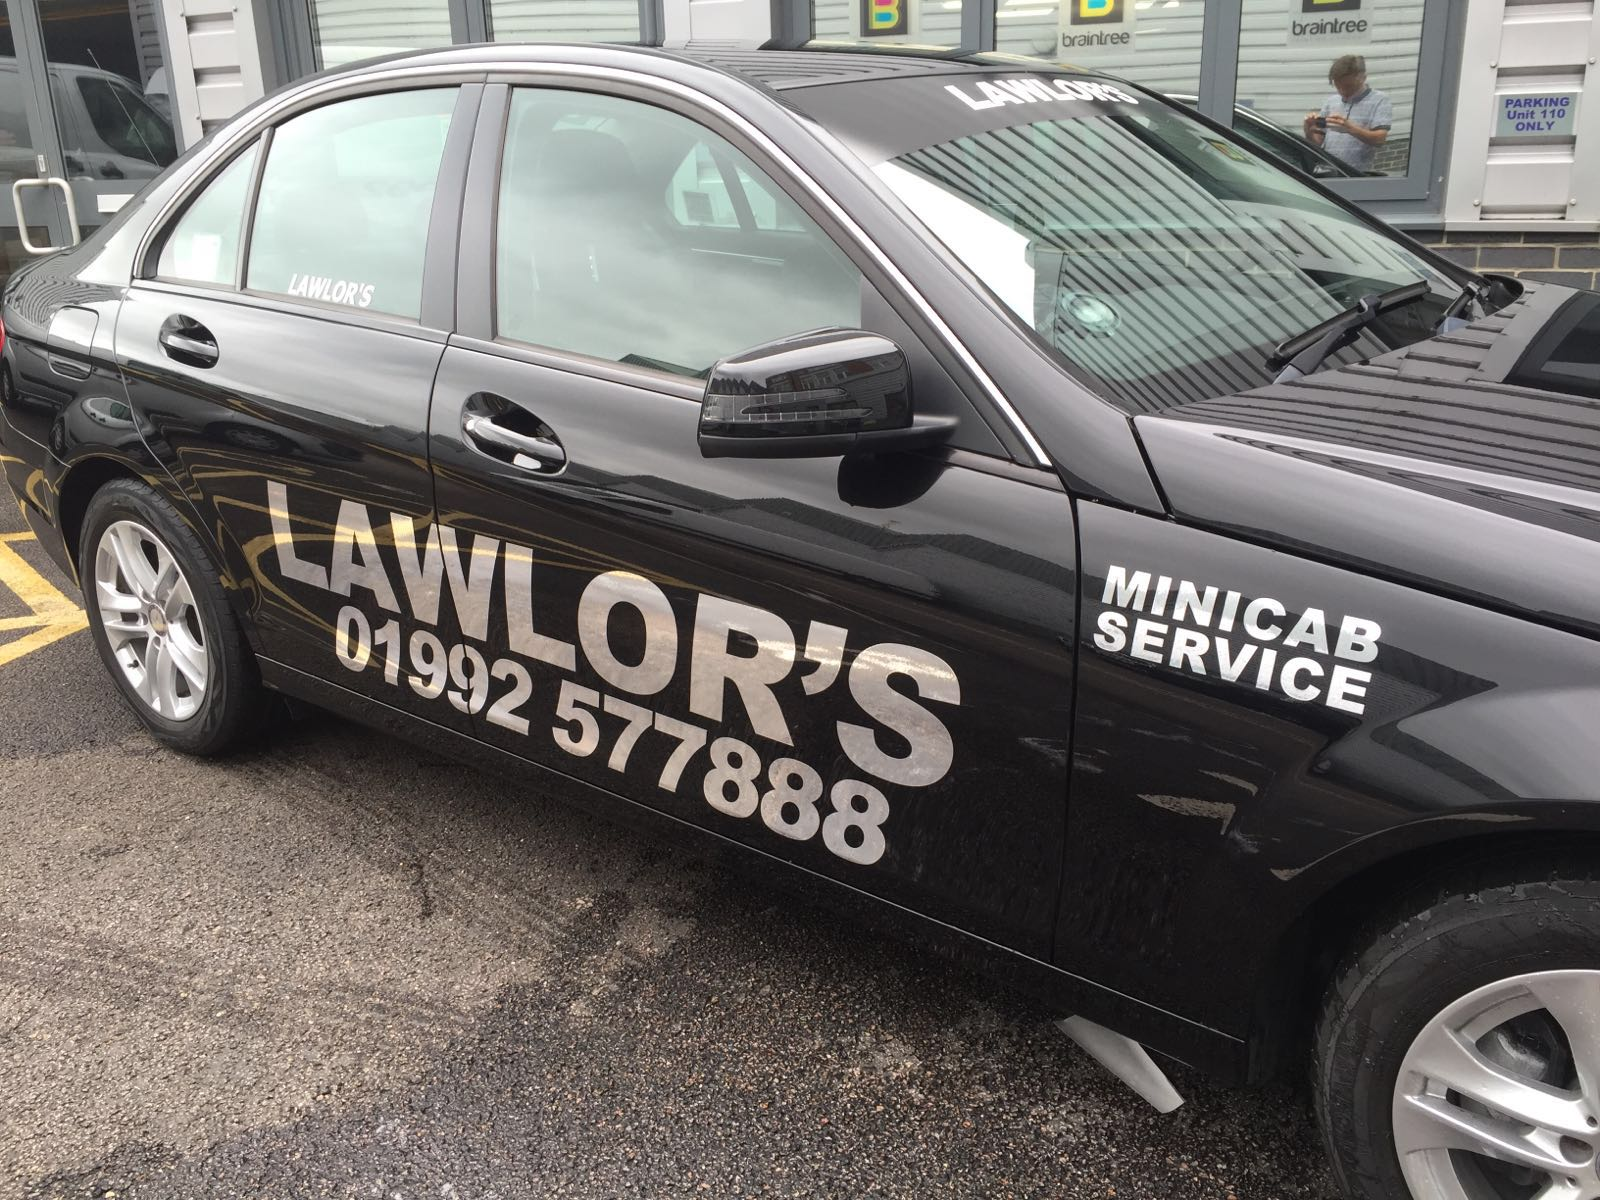 Lawlor Taxis Mercedes